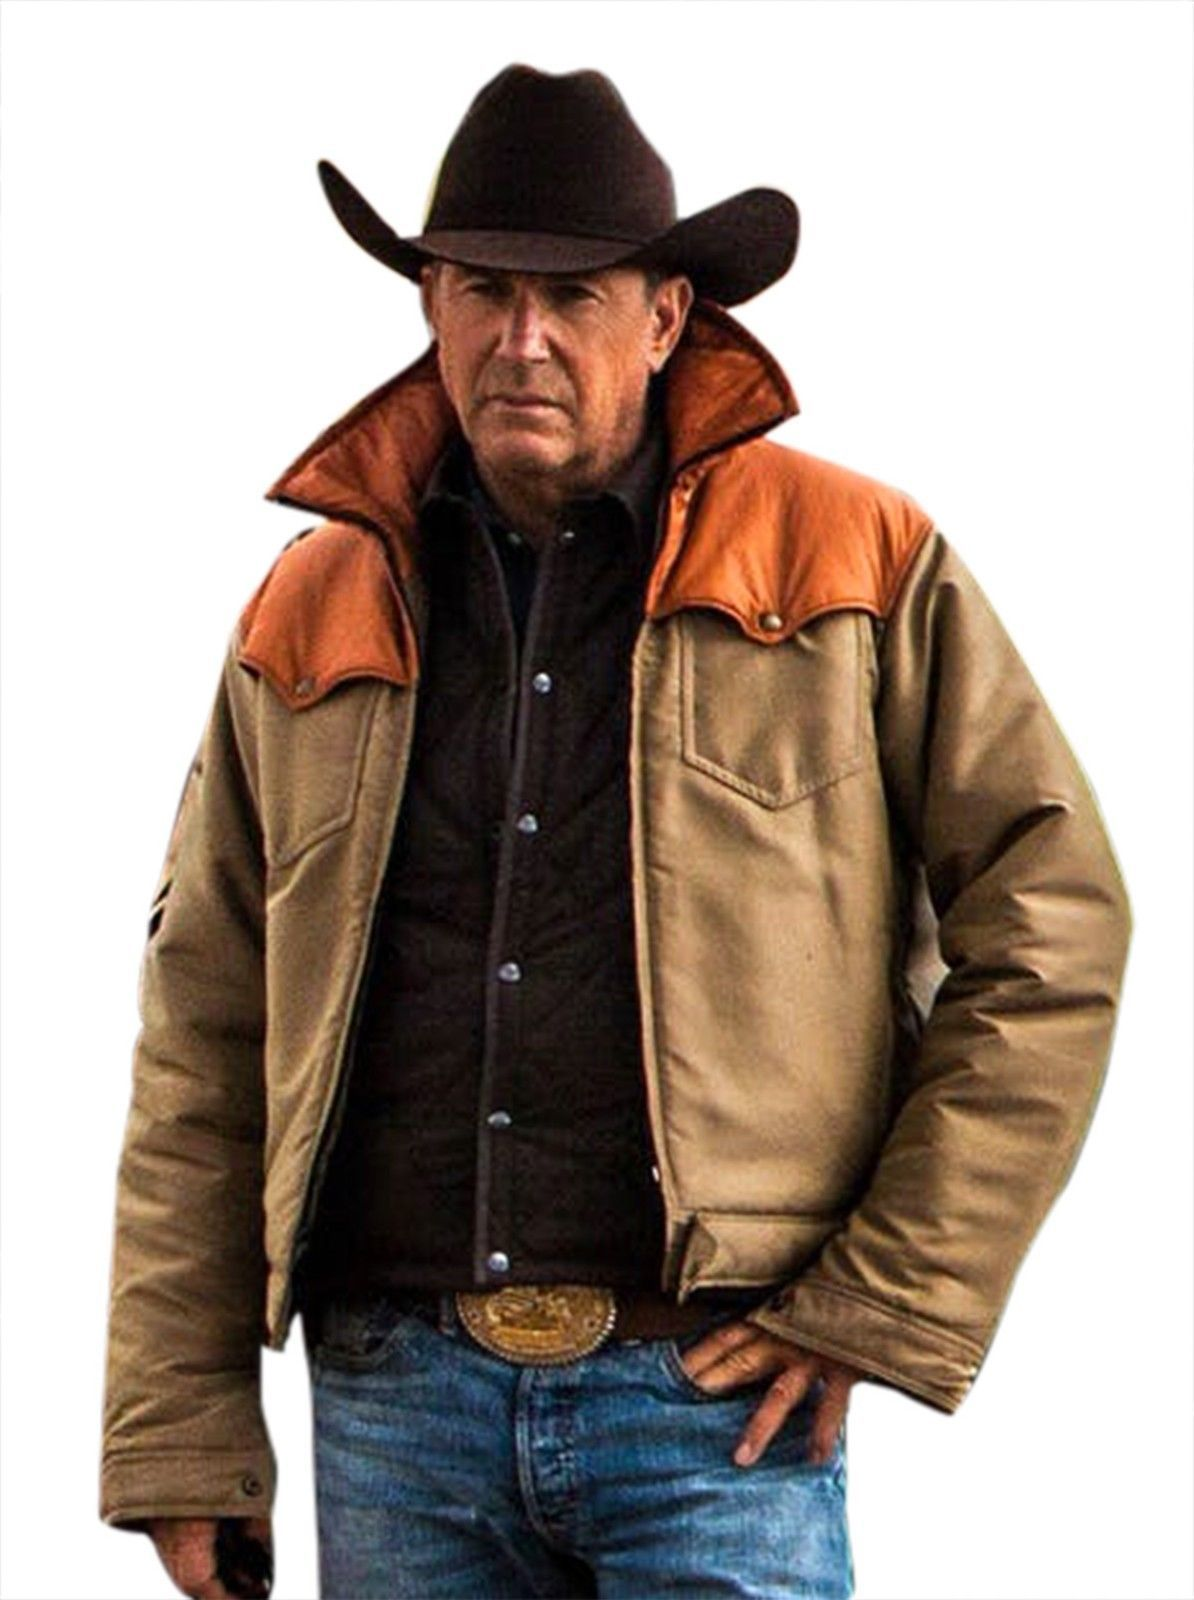 Primary image for Kevin Costner Yellowstone John Dutton Cowboy Beige Cotton Jacket